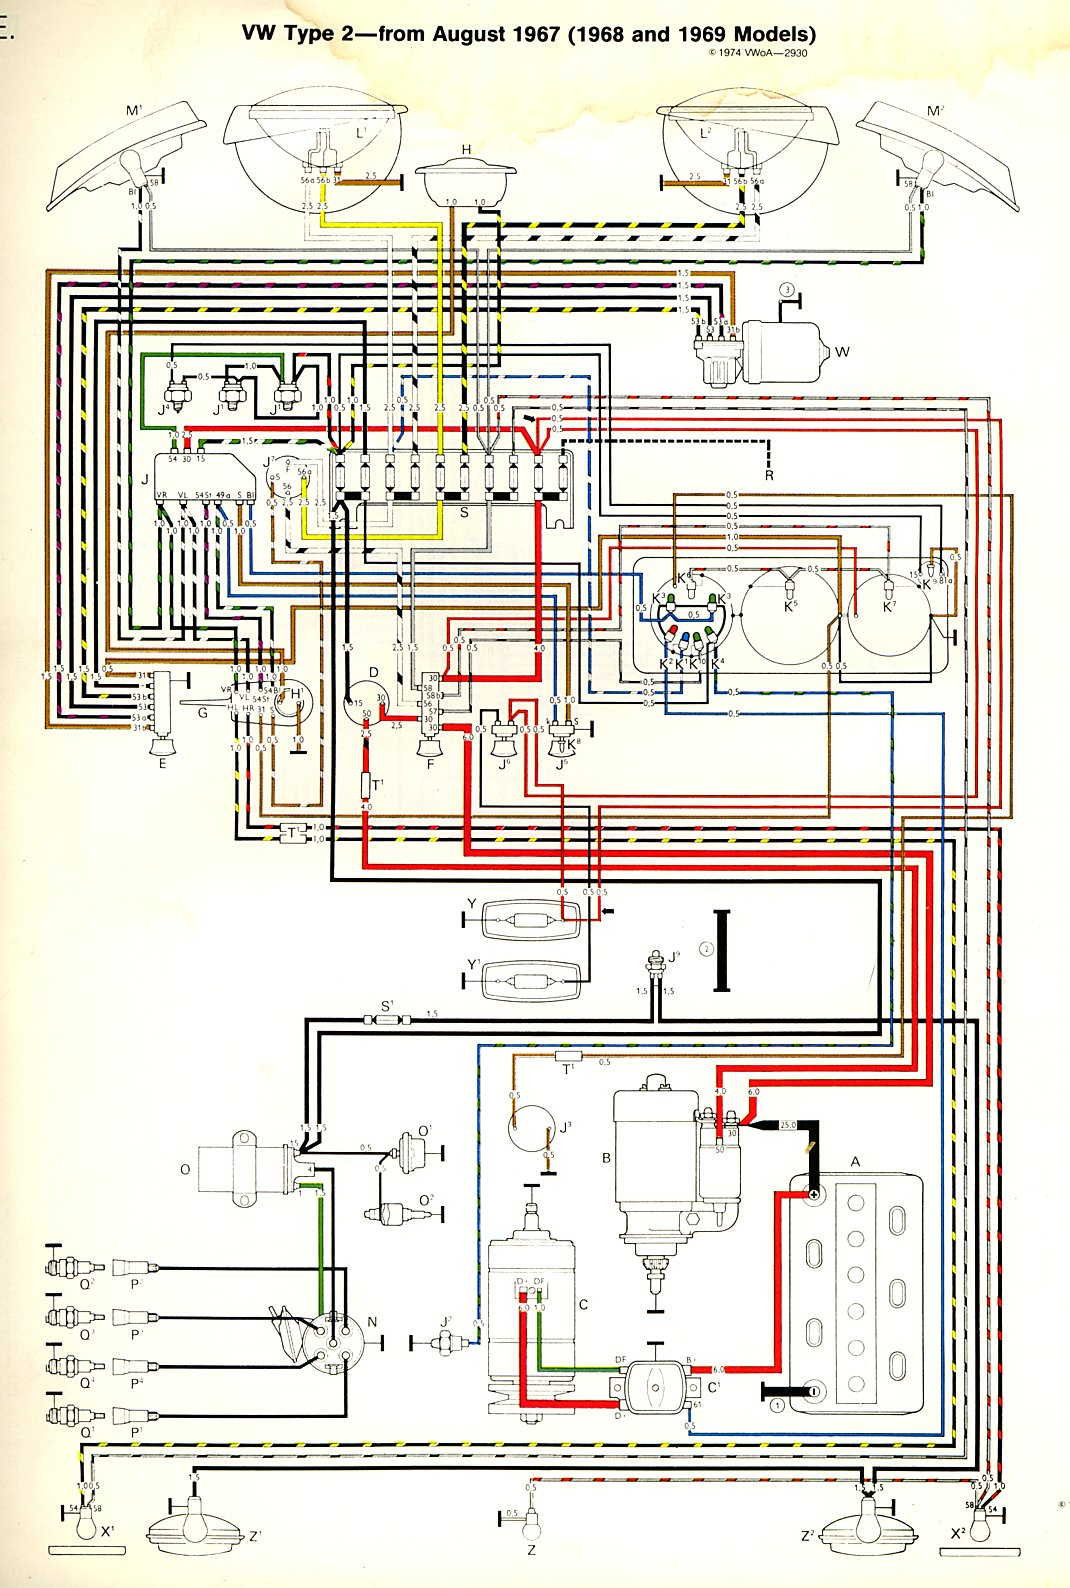 baybus_6869a 1968 69 bus wiring diagram thegoldenbug com wiring schematics at n-0.co